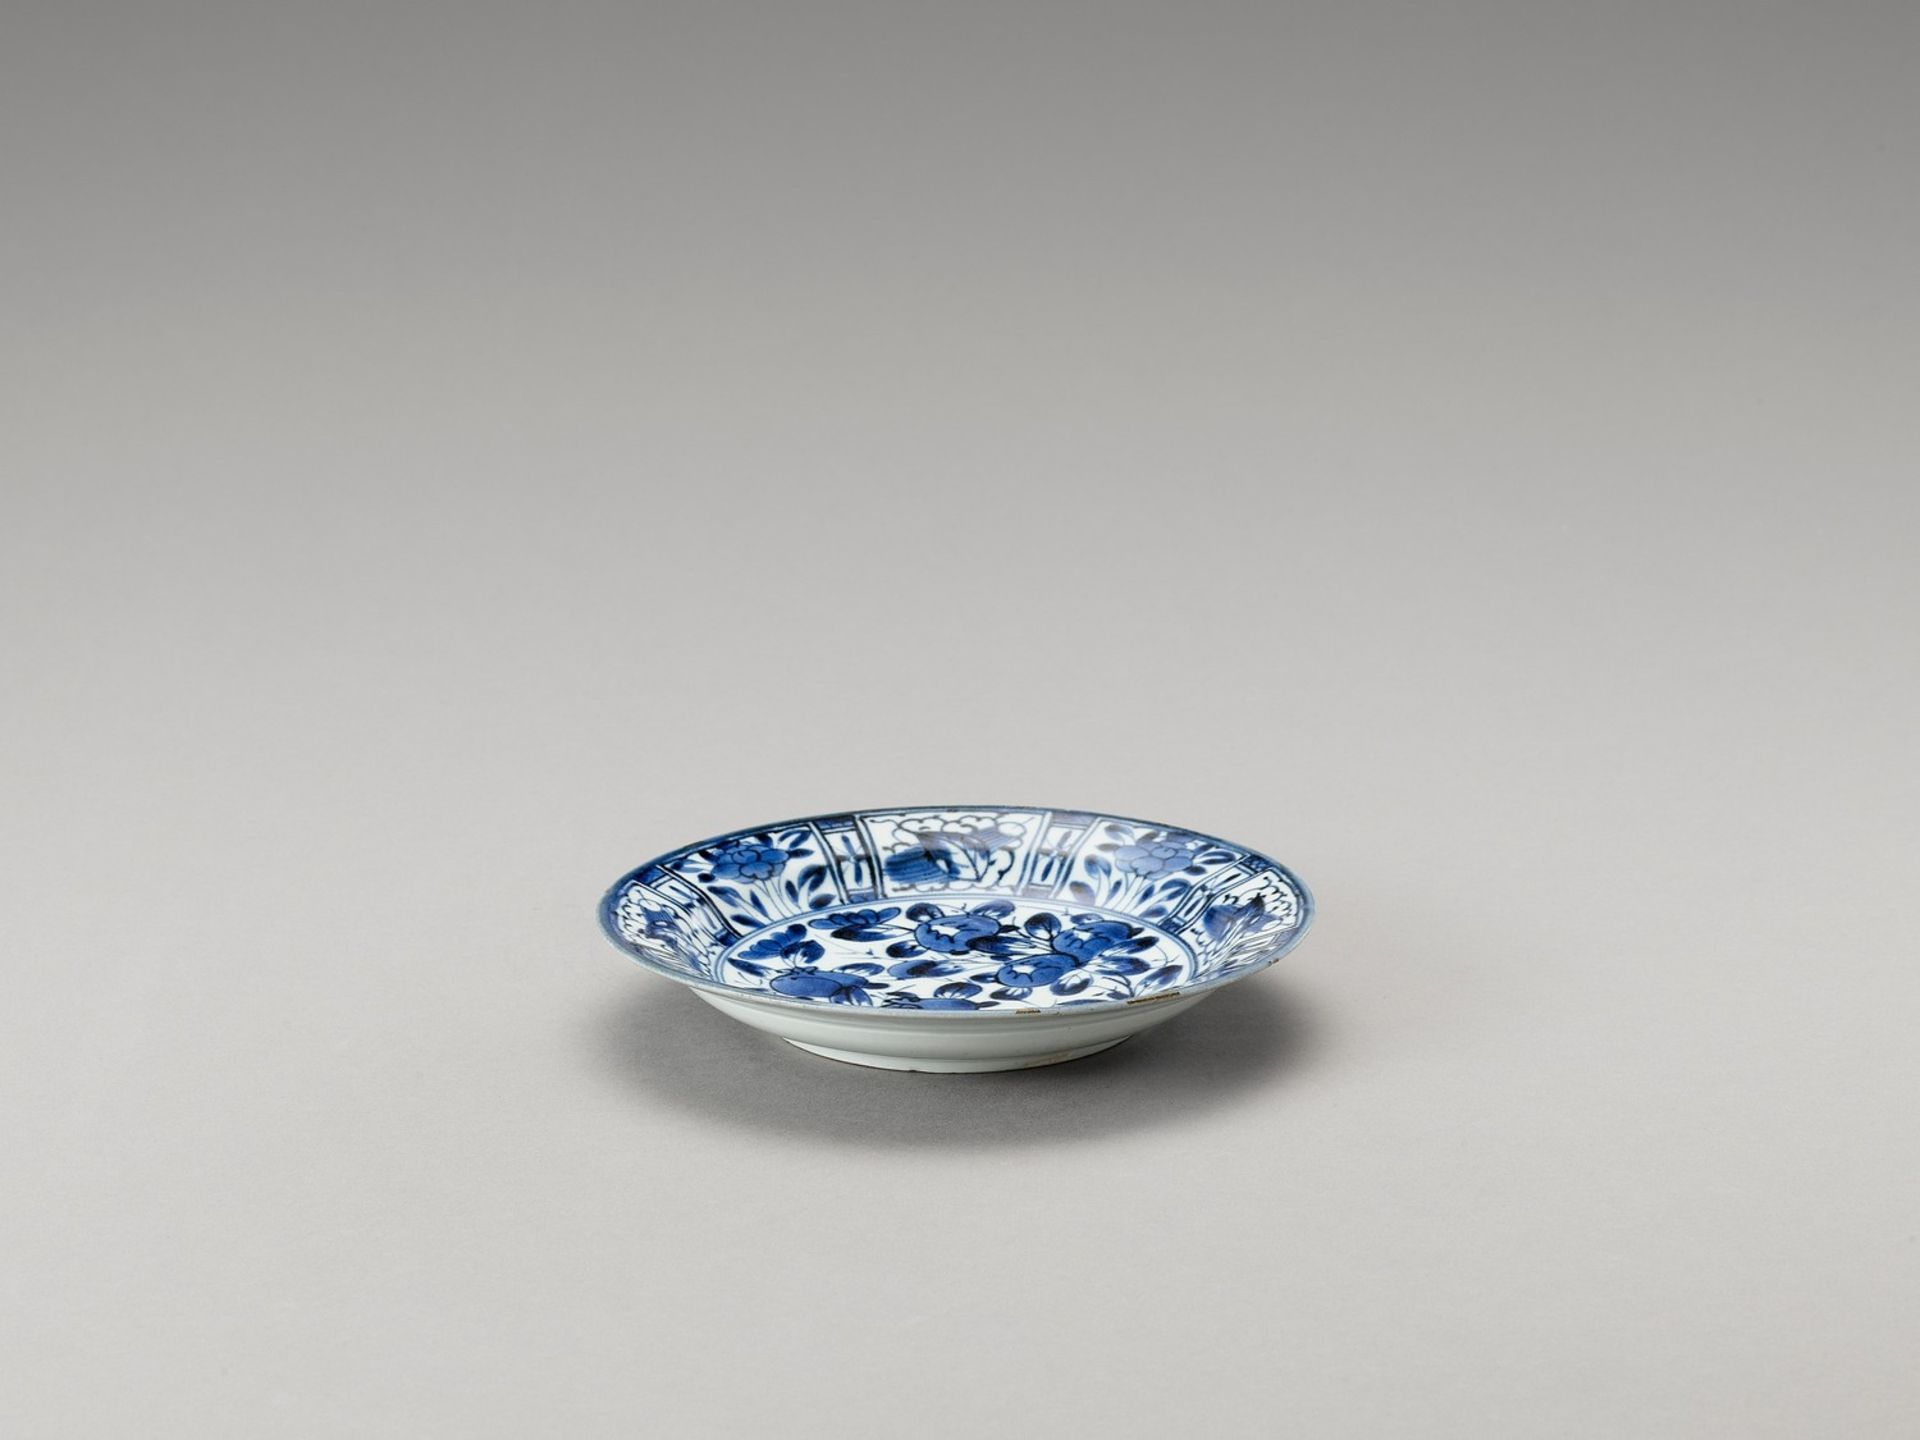 A BLUE AND WHITE 'FLORAL' PORCELAIN DISH - Image 4 of 4